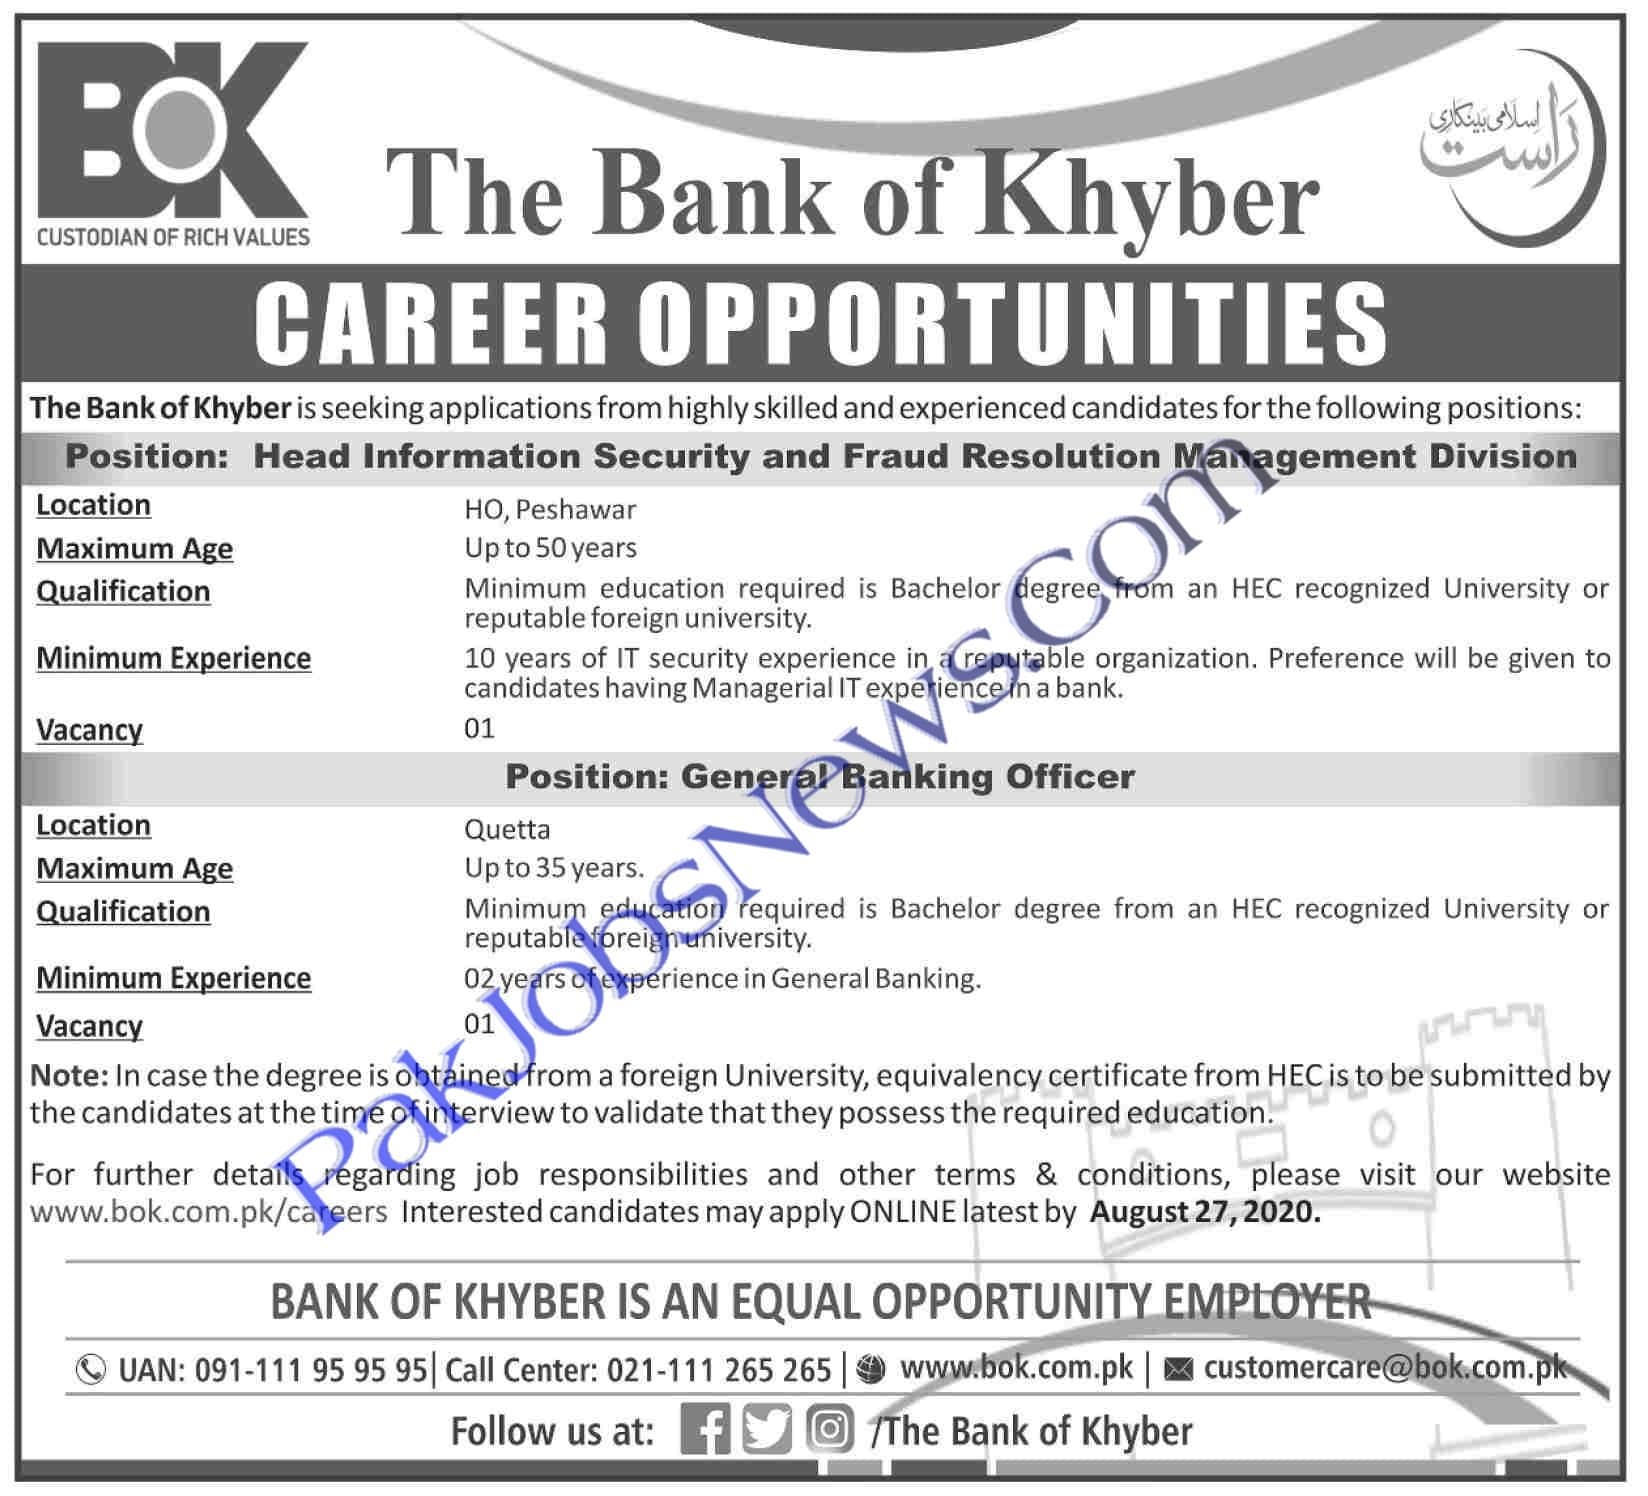 The Bank of Khyber BOK Jobs August 2020 advertisement